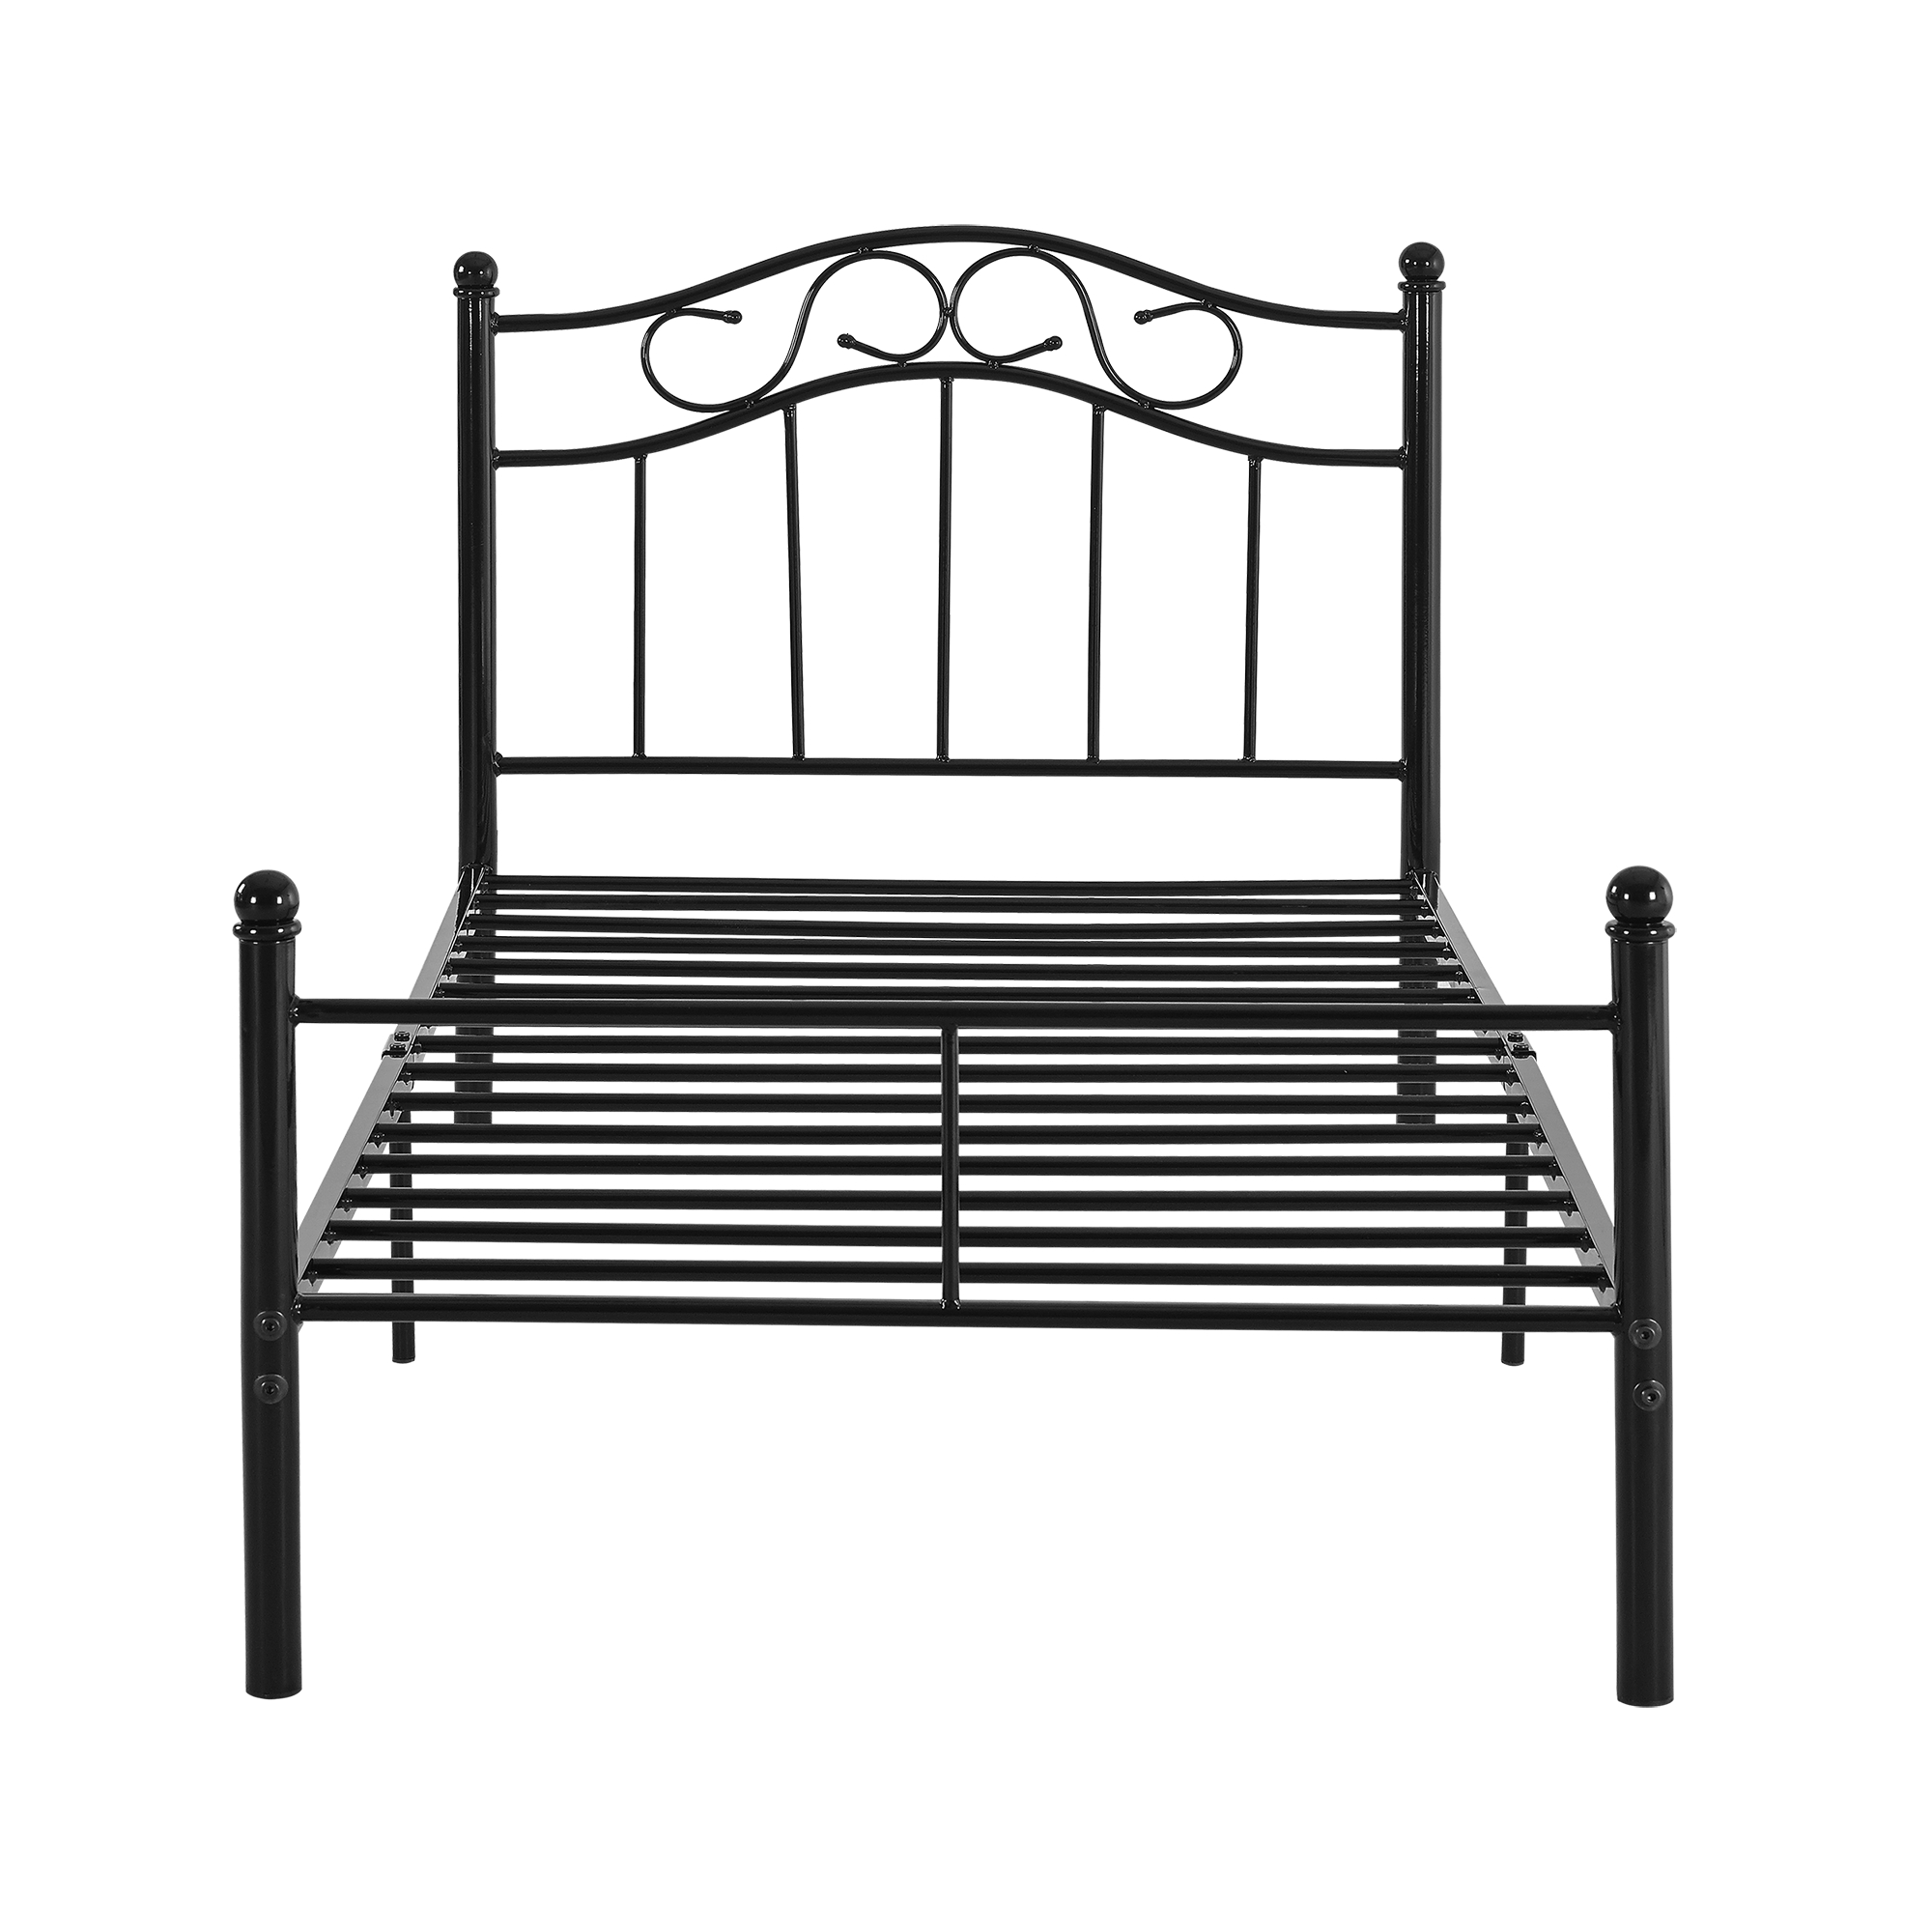 metal bedframe 90 120 140 180 200 x 200 bed bedstead double ebay. Black Bedroom Furniture Sets. Home Design Ideas